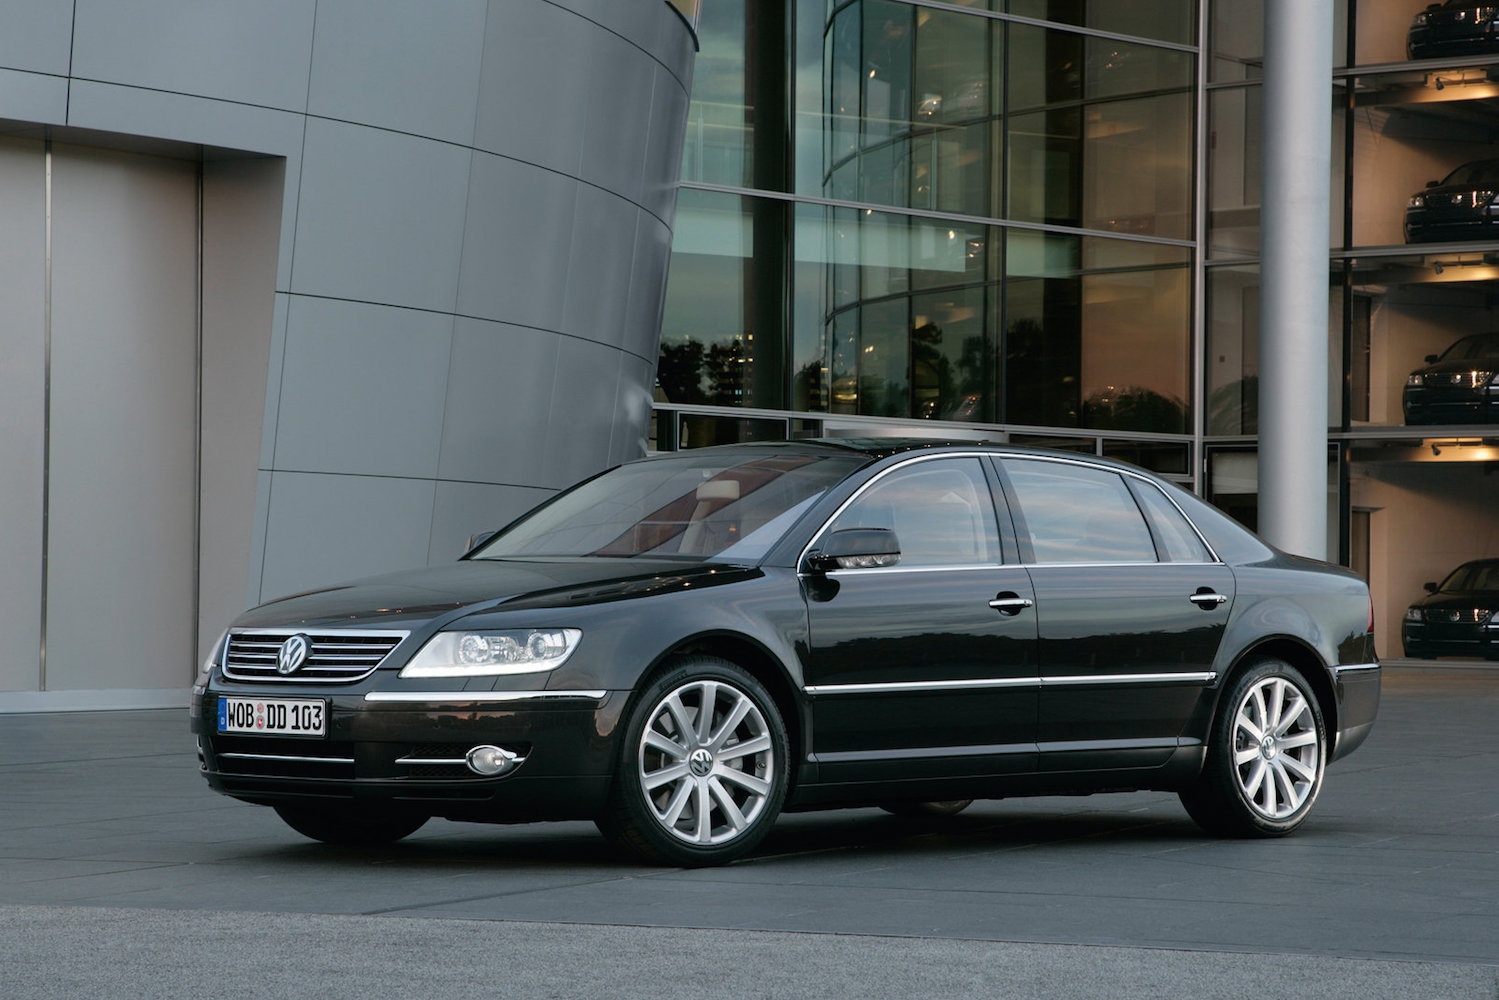 volkswagen s next generation phaeton will lead the brand s. Black Bedroom Furniture Sets. Home Design Ideas